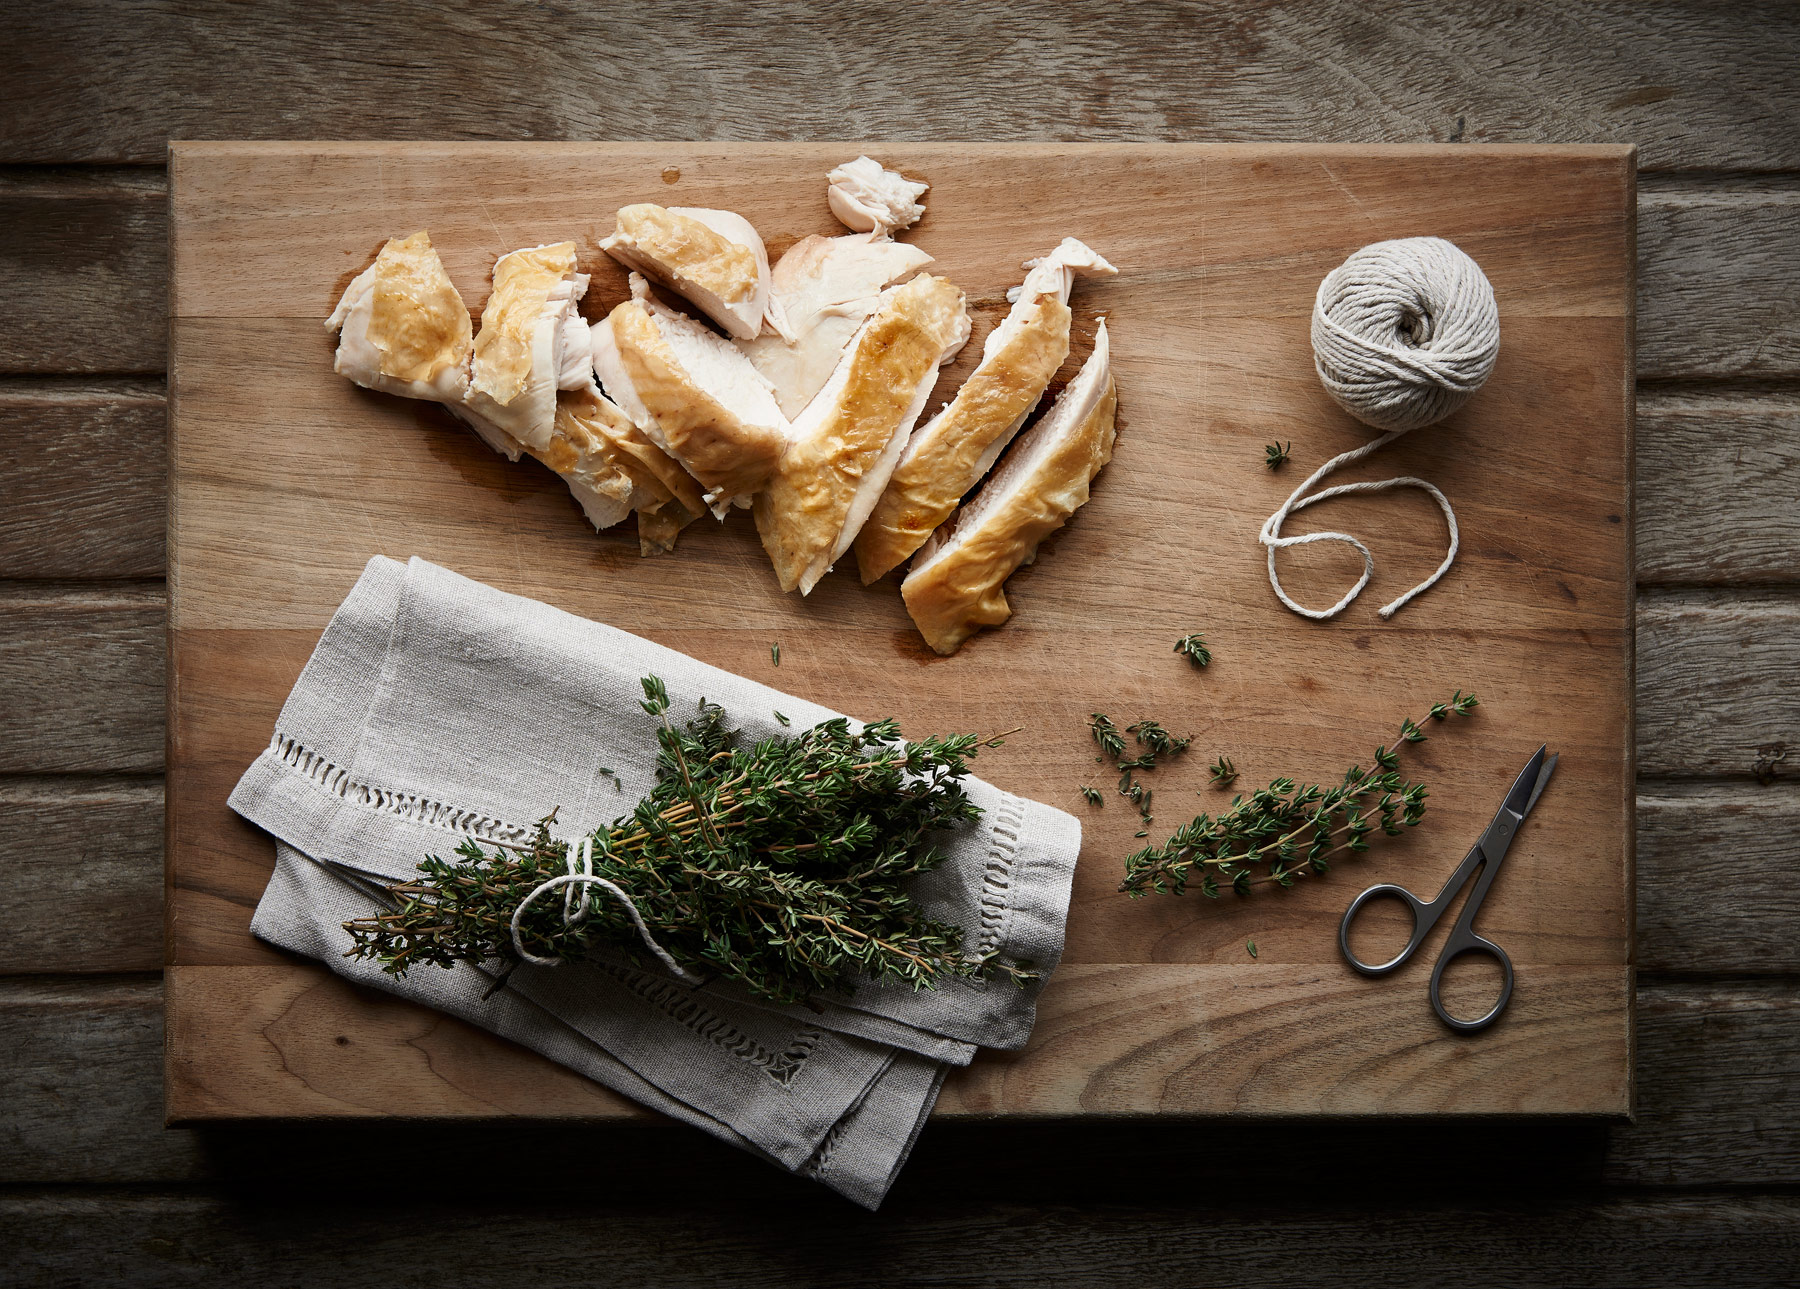 Chopping board with sliced chicken and thyme